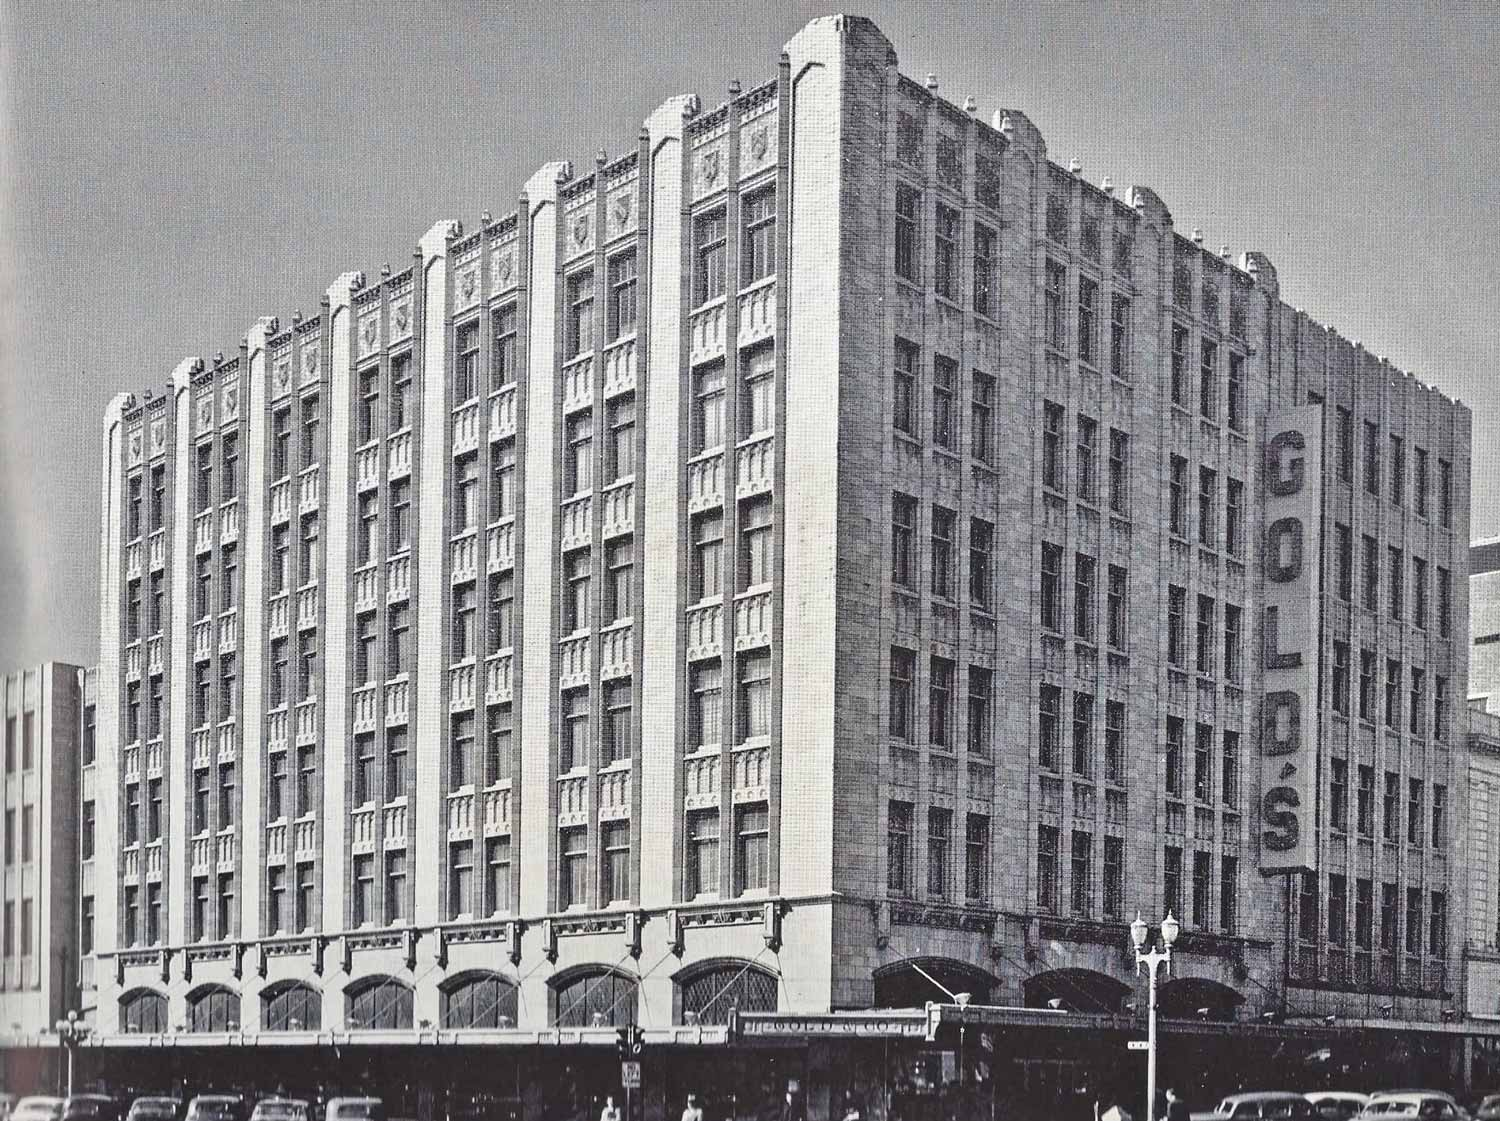 Gold's department store building exterior